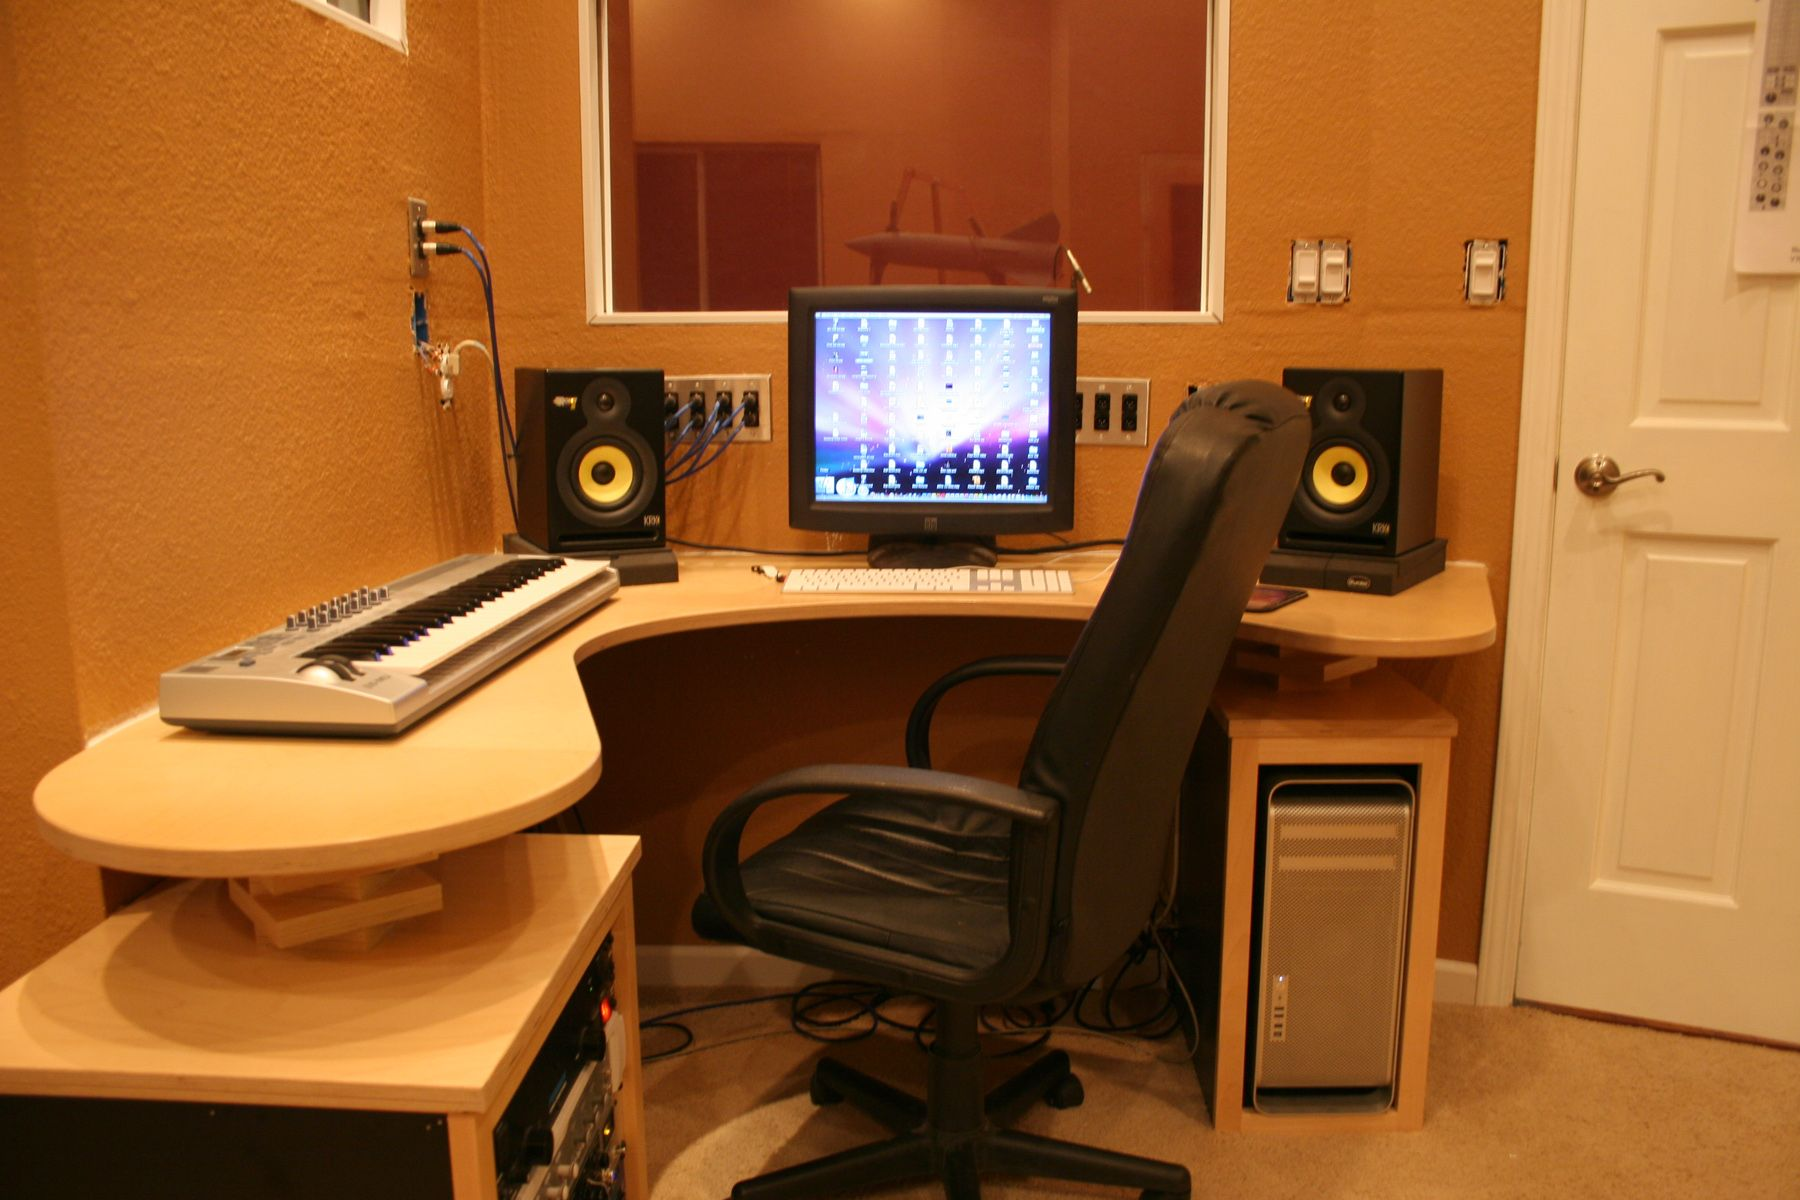 Swell 17 Best Images About Studio On Pinterest Music Production Largest Home Design Picture Inspirations Pitcheantrous